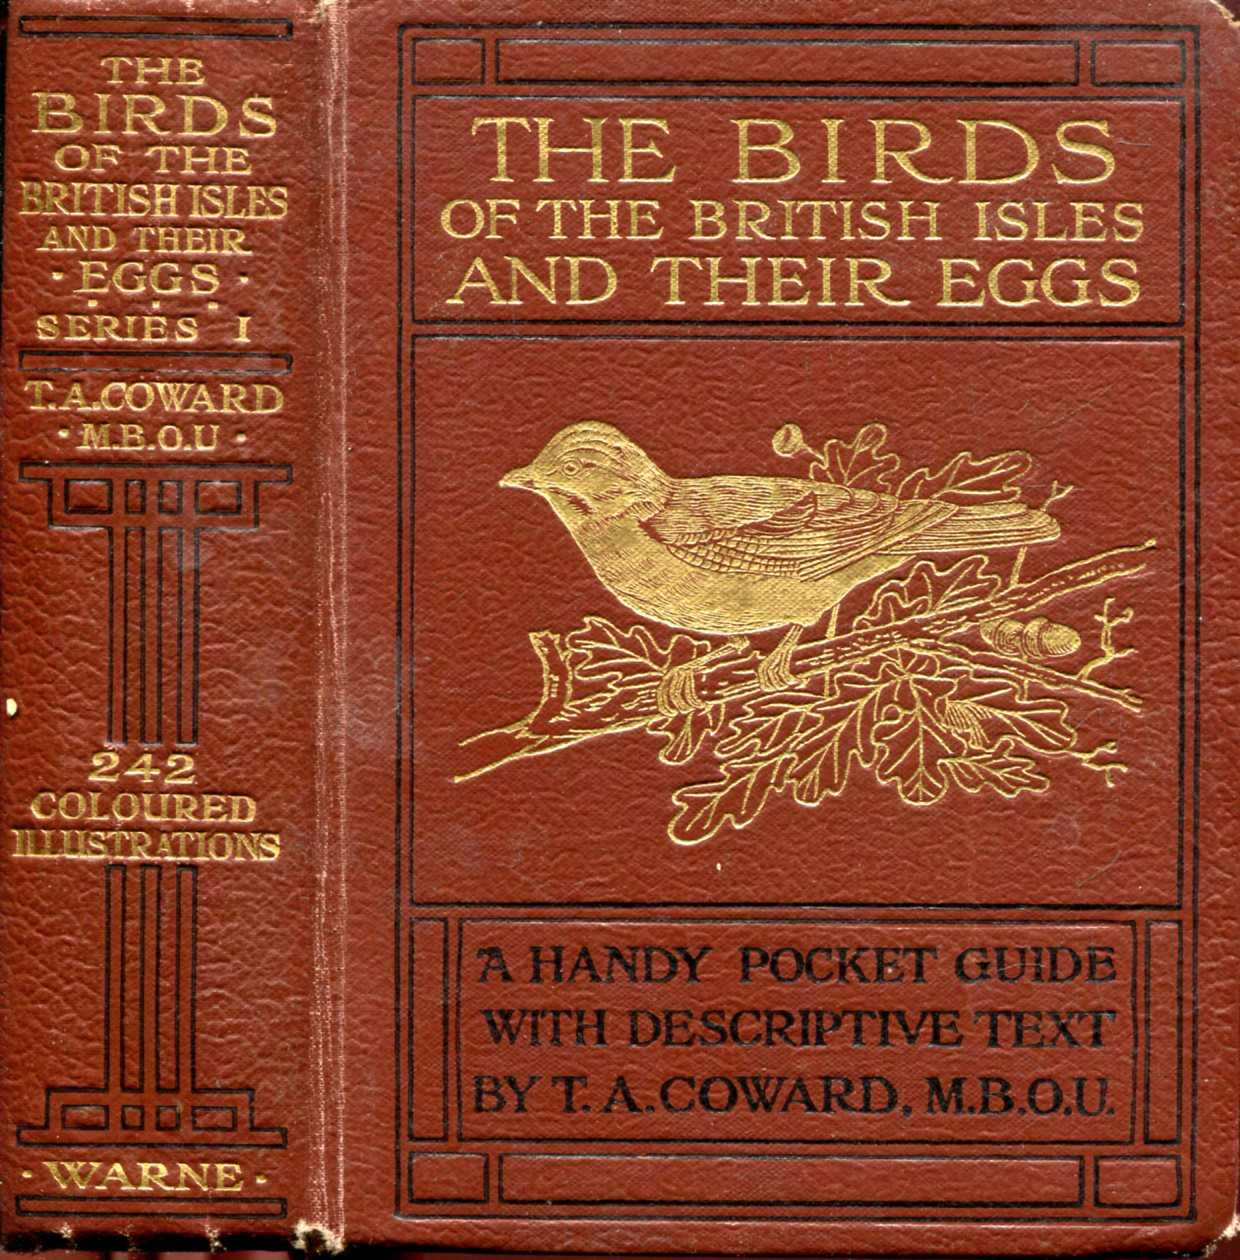 Image for The Birds of the British Isles and their Eggs, First Series, Families Corvidae to Sulidae